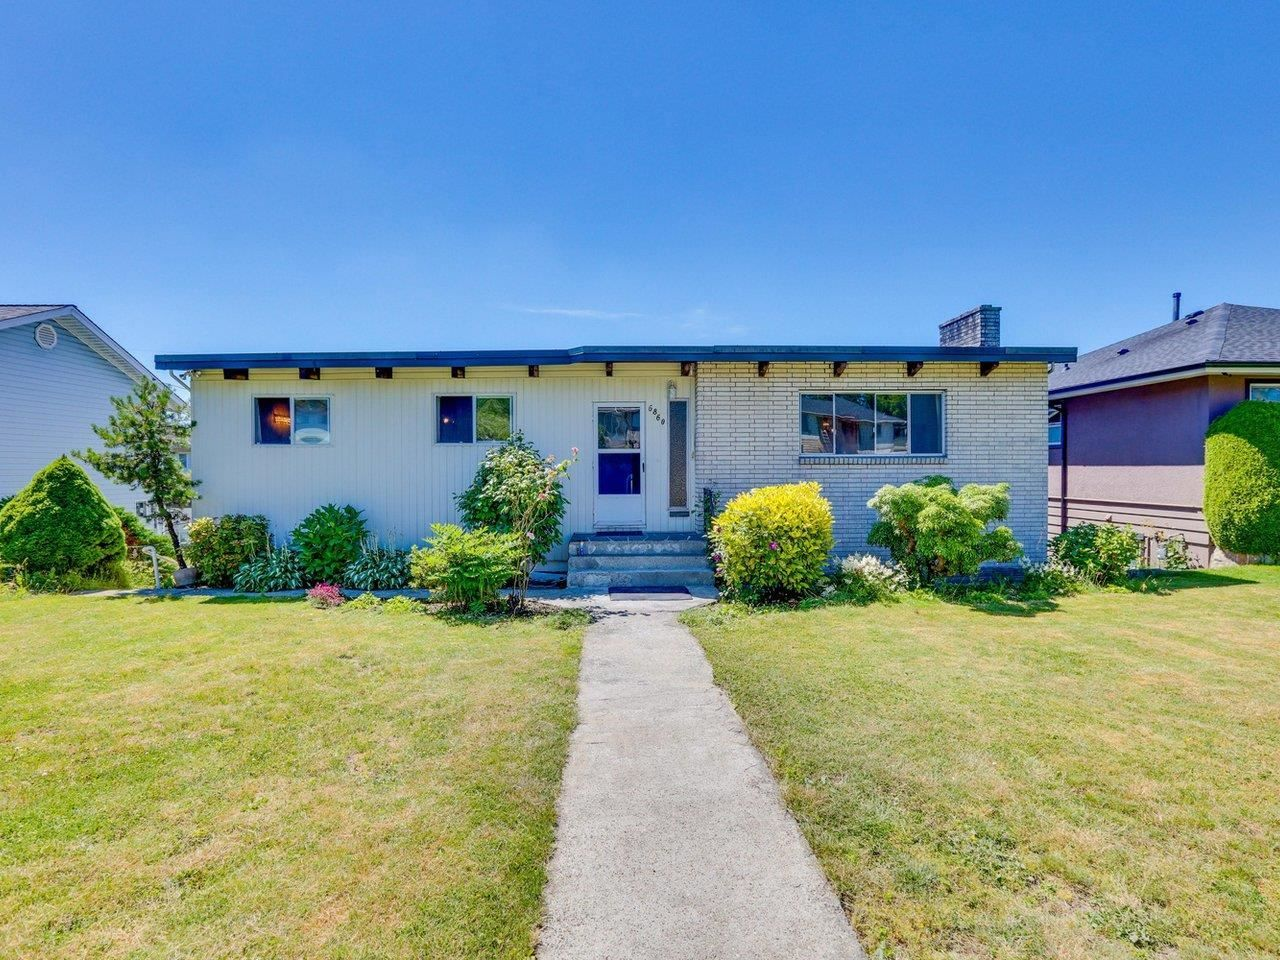 Photo 1: Photos: 6860 HYCREST Drive in Burnaby: Montecito House for sale (Burnaby North)  : MLS®# R2594917